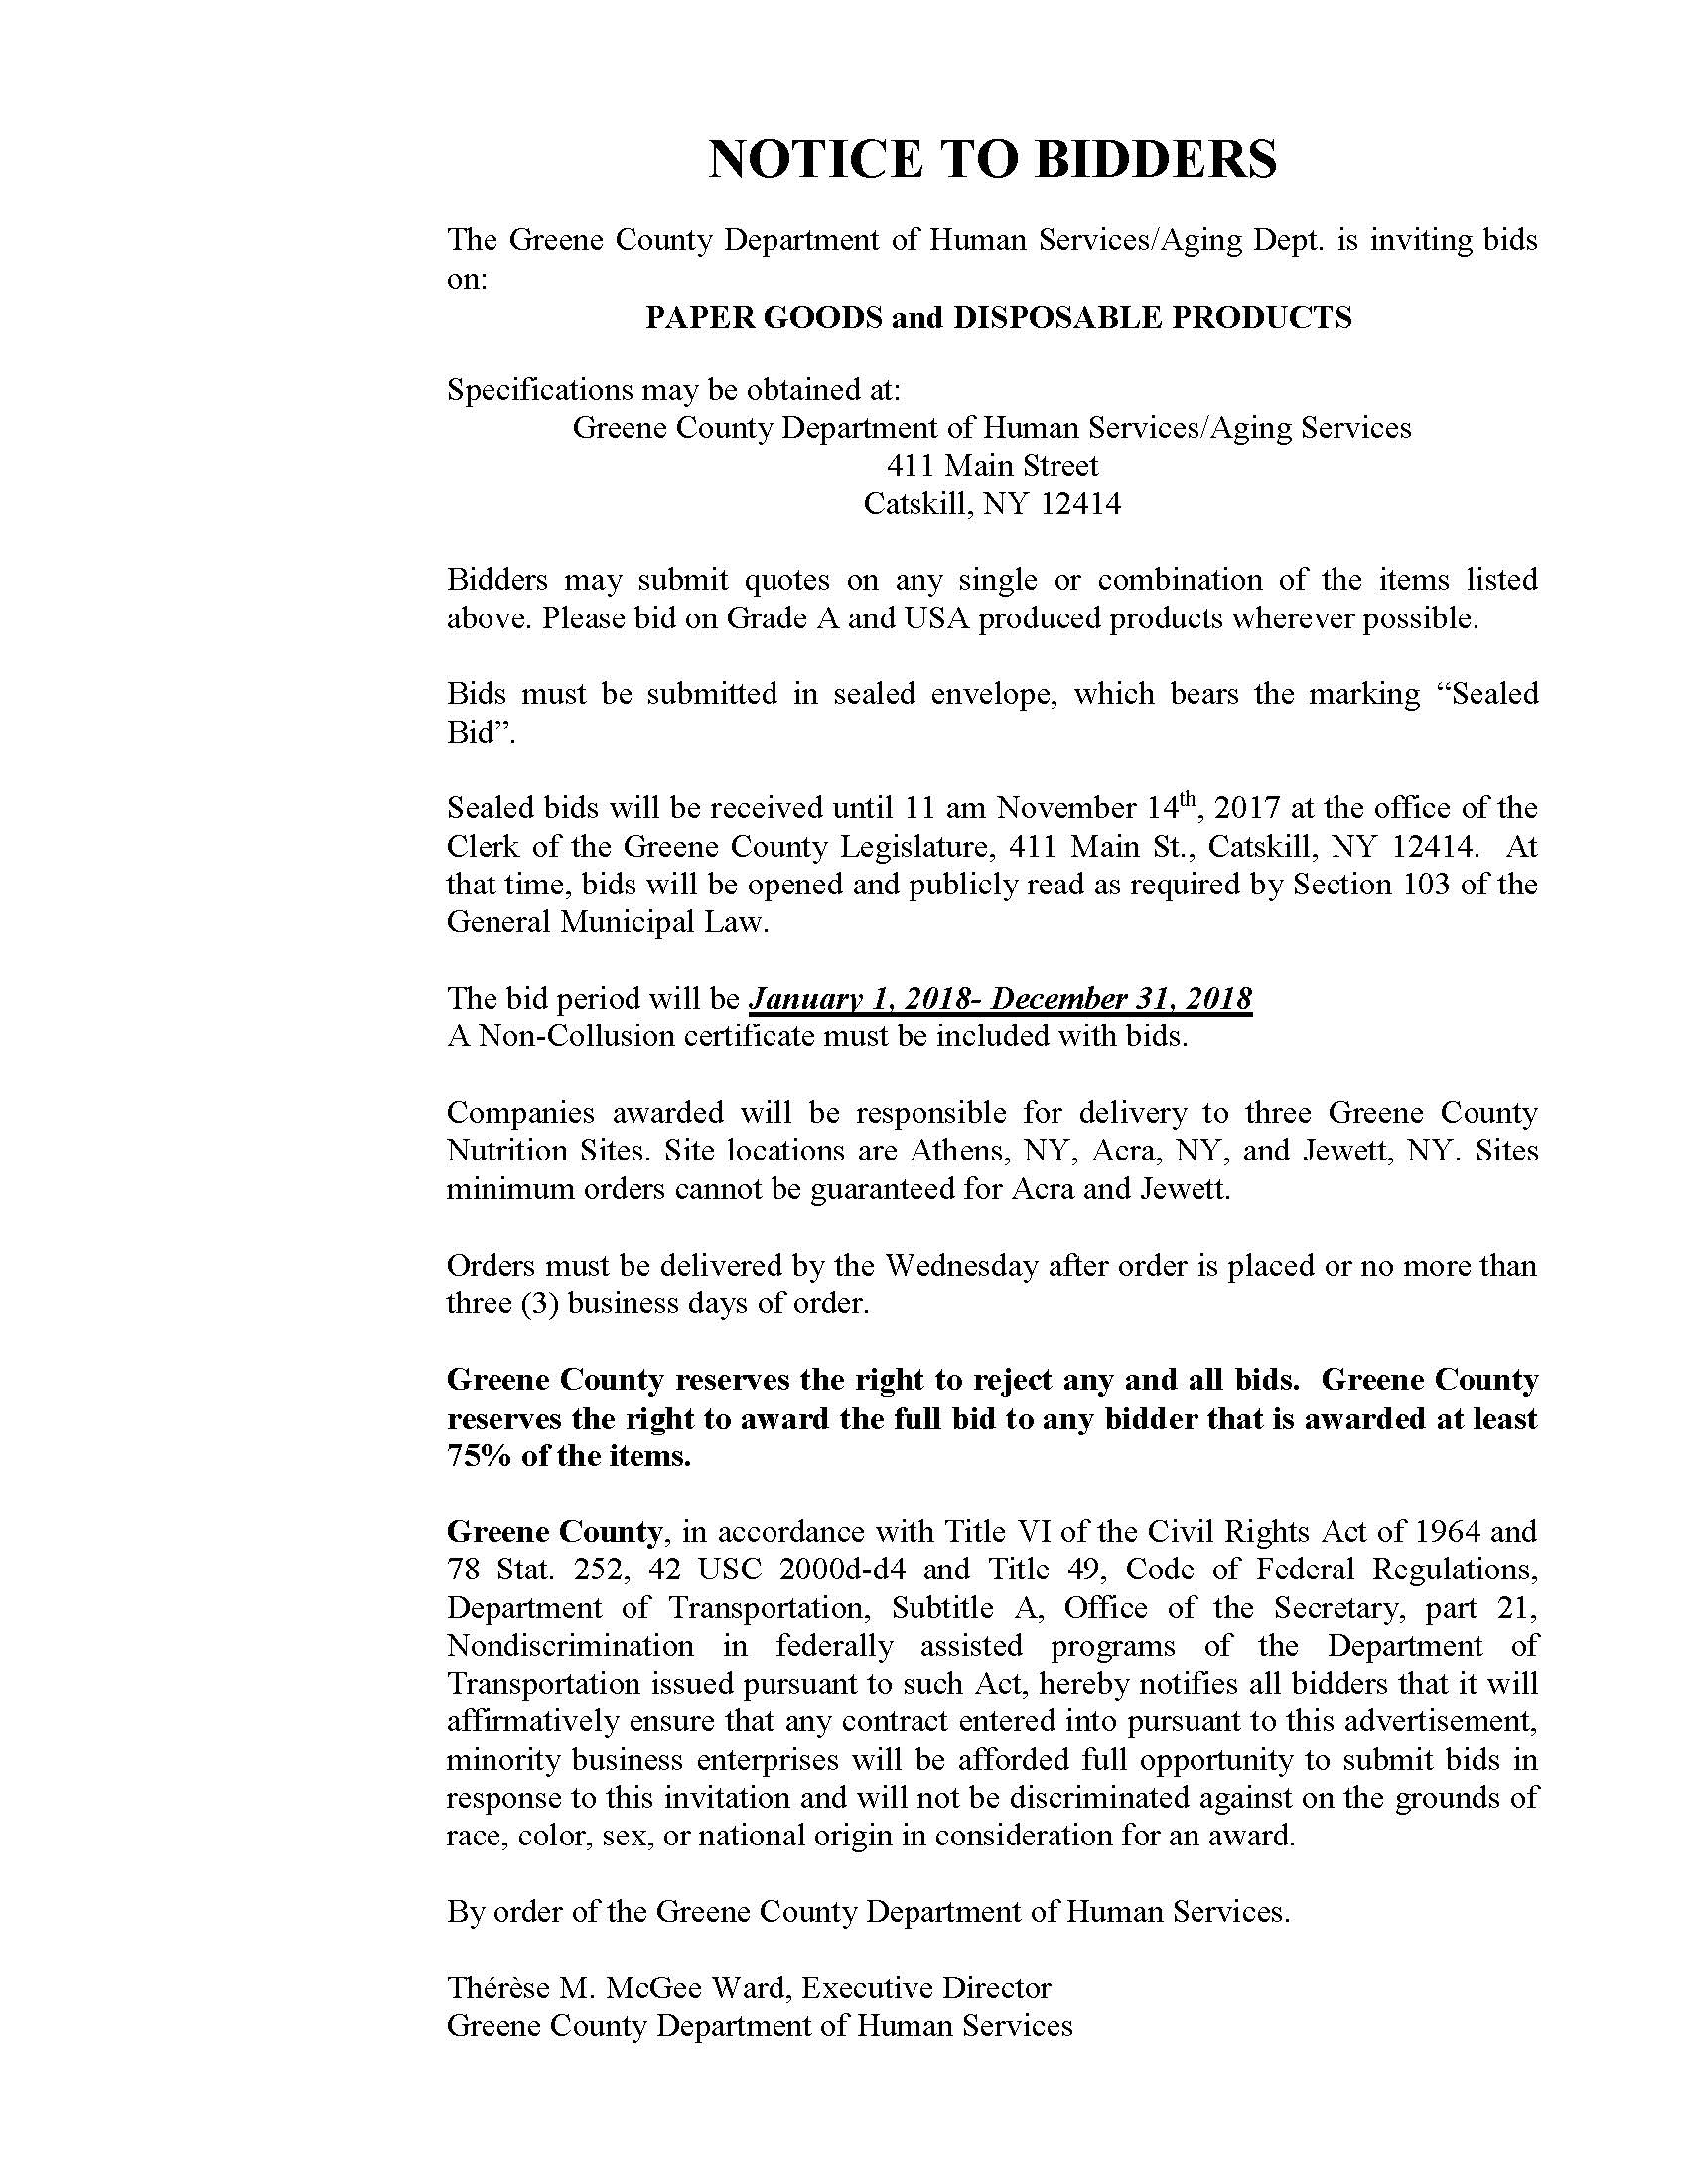 Notice To Bidders - Paper Goods & Disposable Products